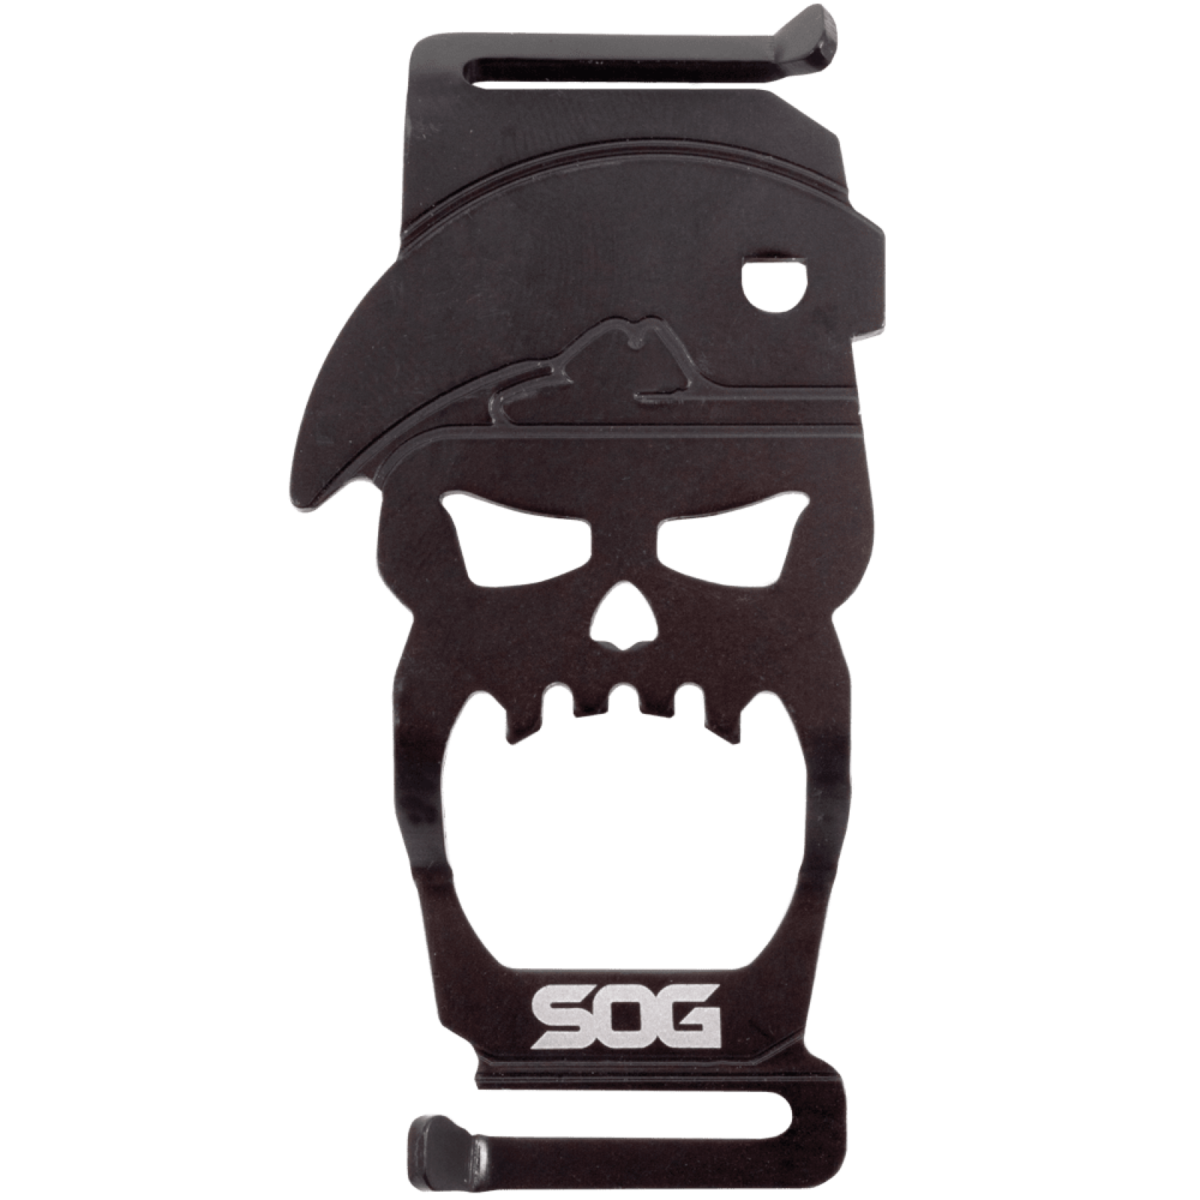 S.O.G. Black Steel Skull BITE Bottle Opener